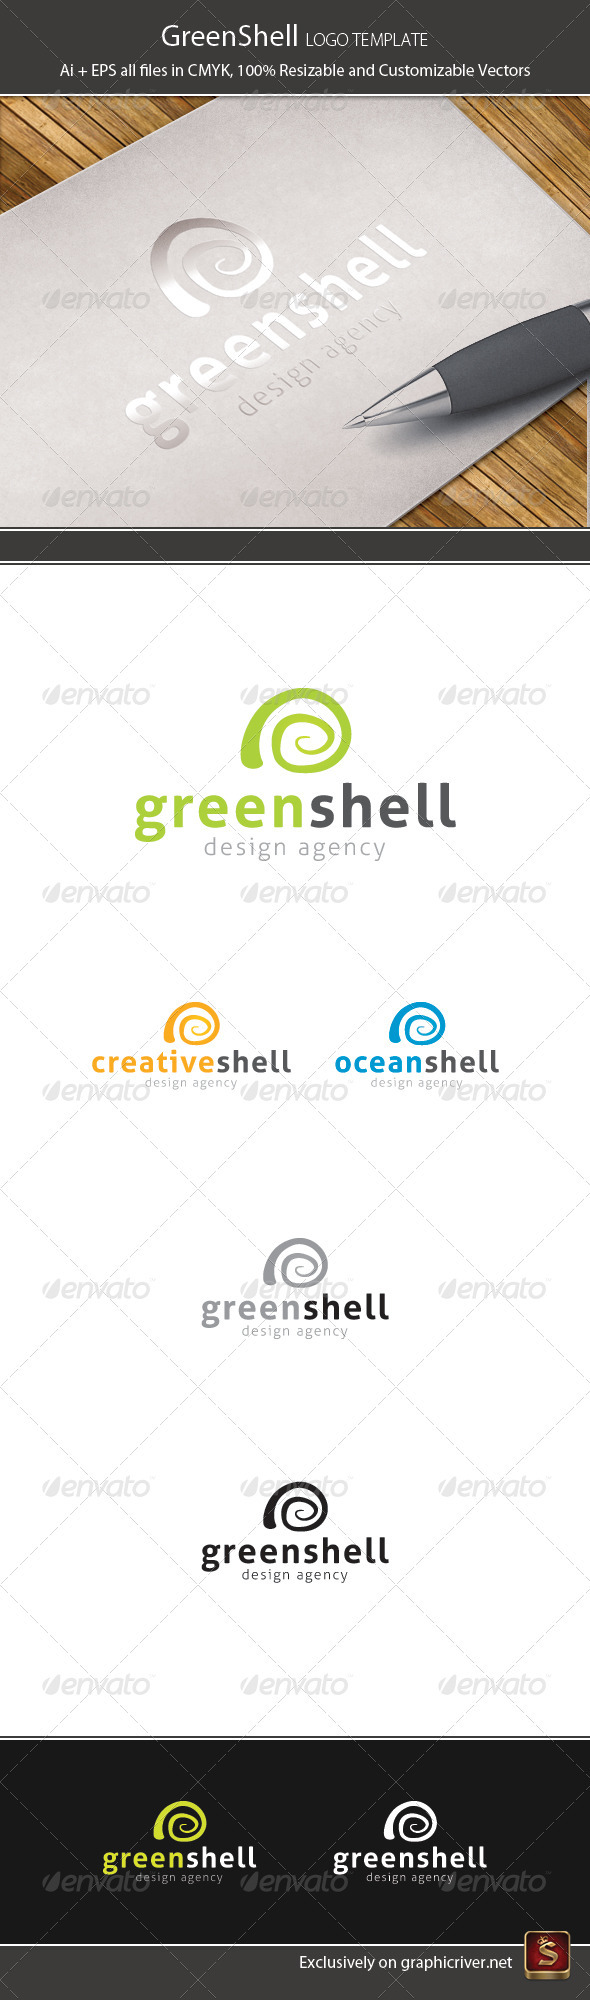 Green Shell Logo Template - Vector Abstract